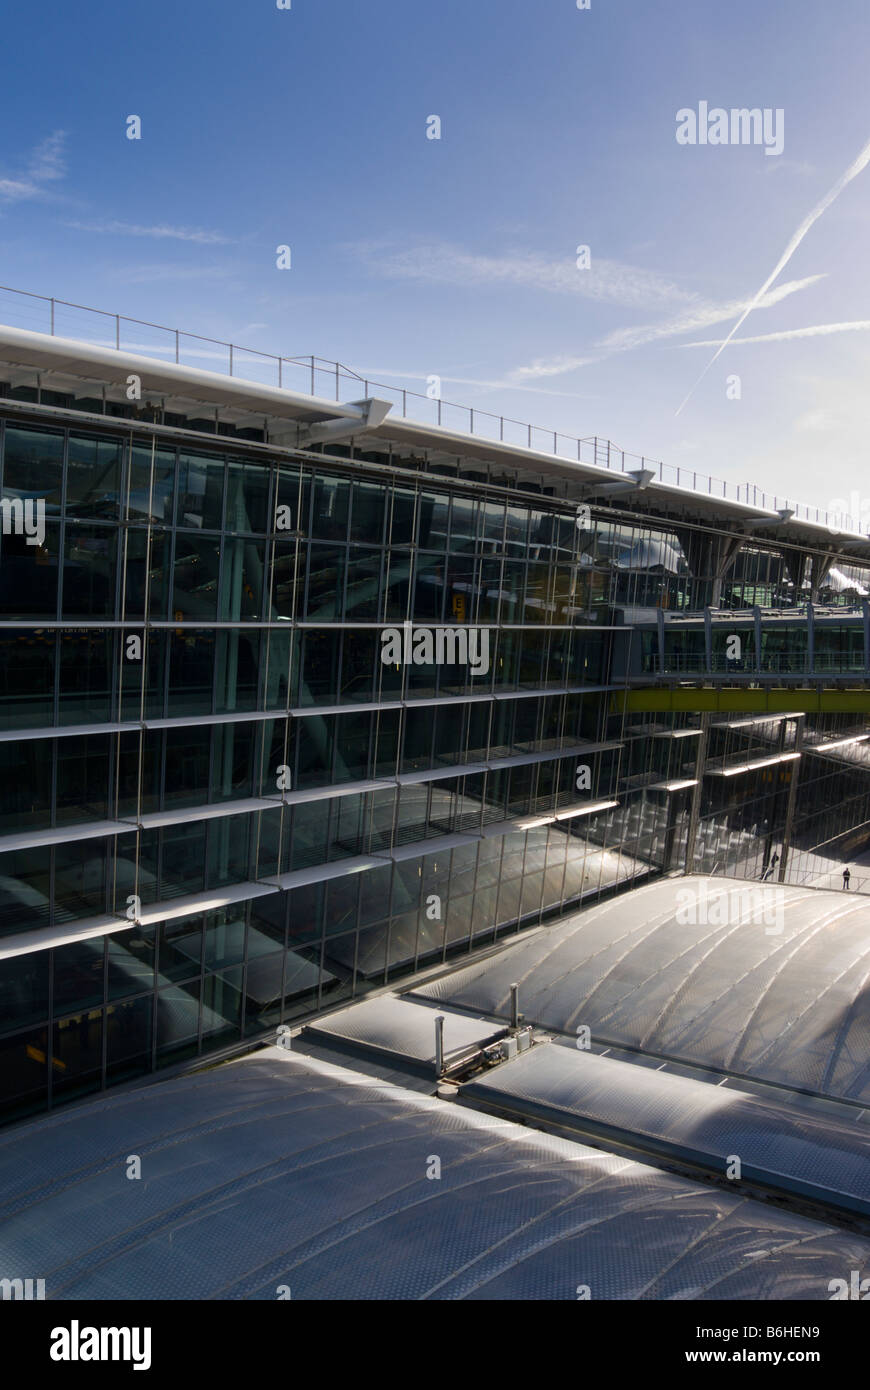 Outdoor view of Terminal 5 at Heathrow Airport. Modern buildings. - Stock Image